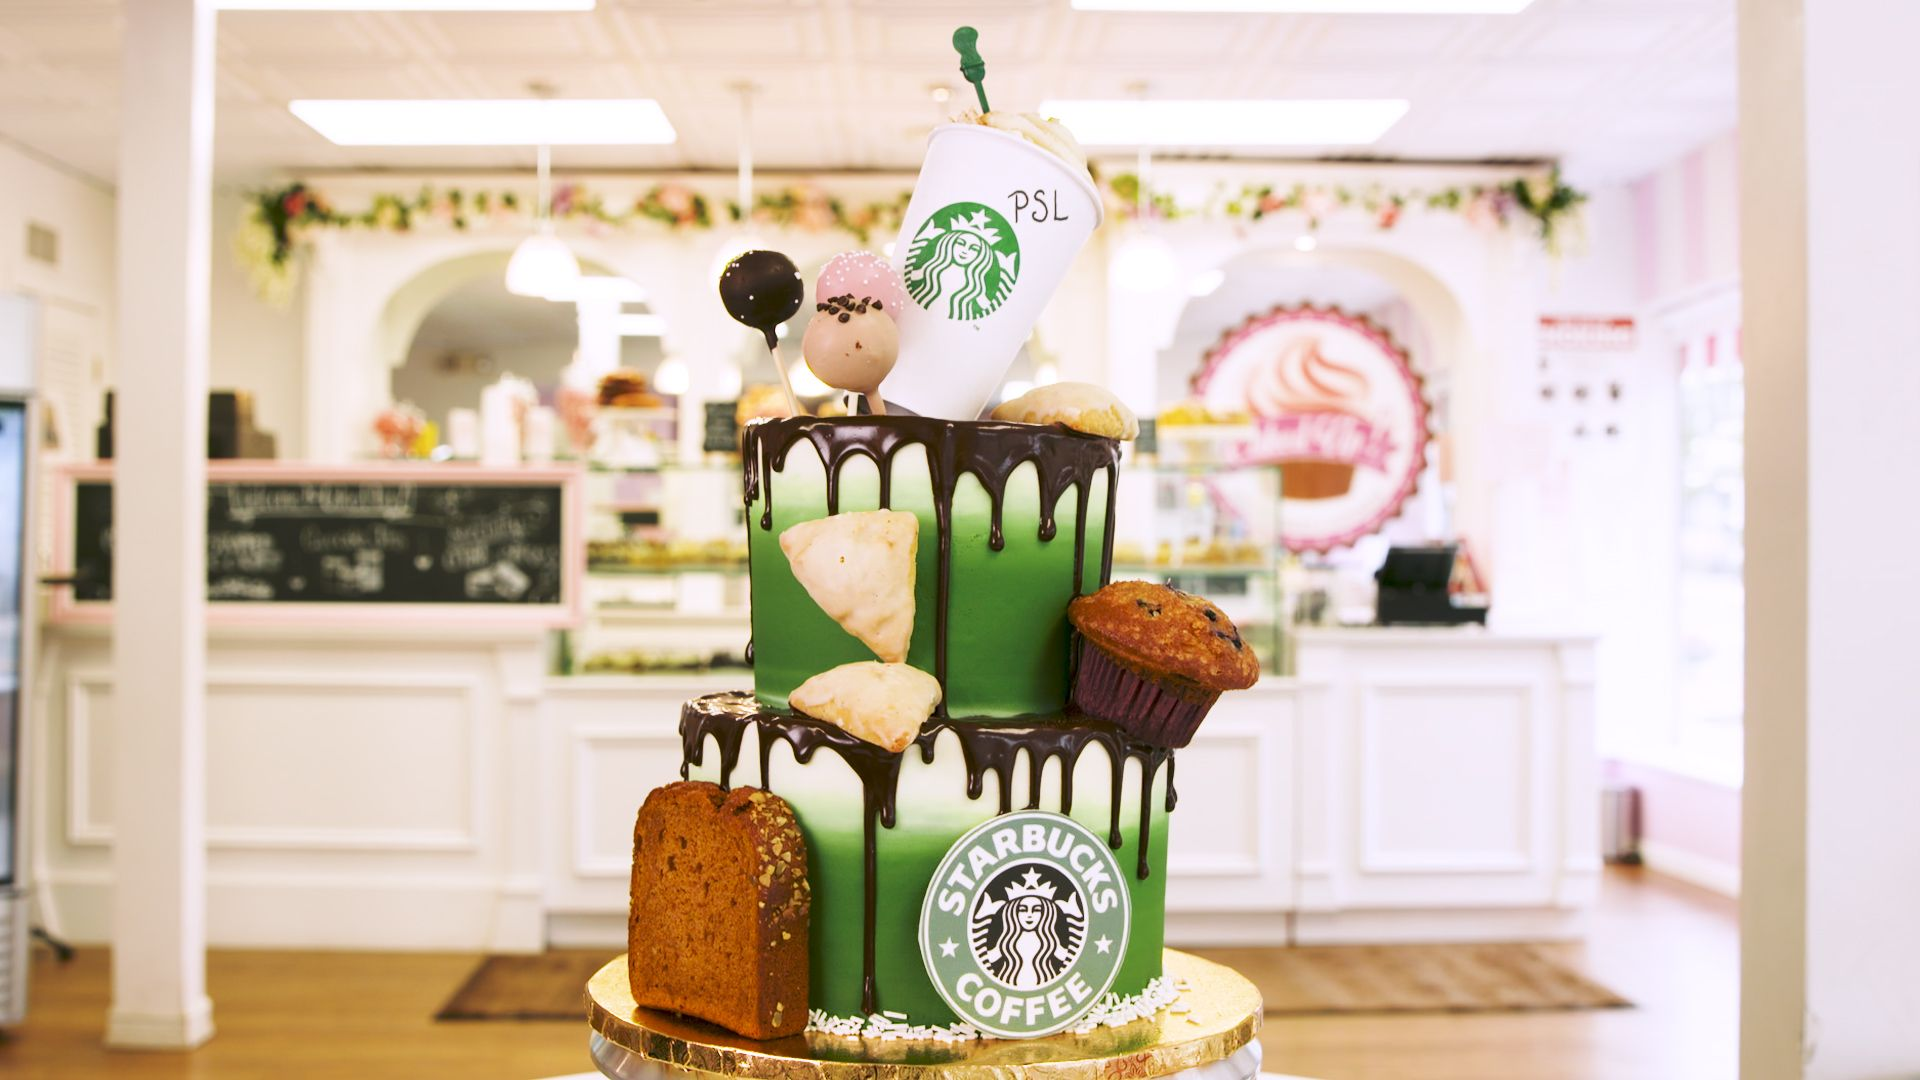 WATCH Starbucks Lovers Will Be Hypnotized By This Cake